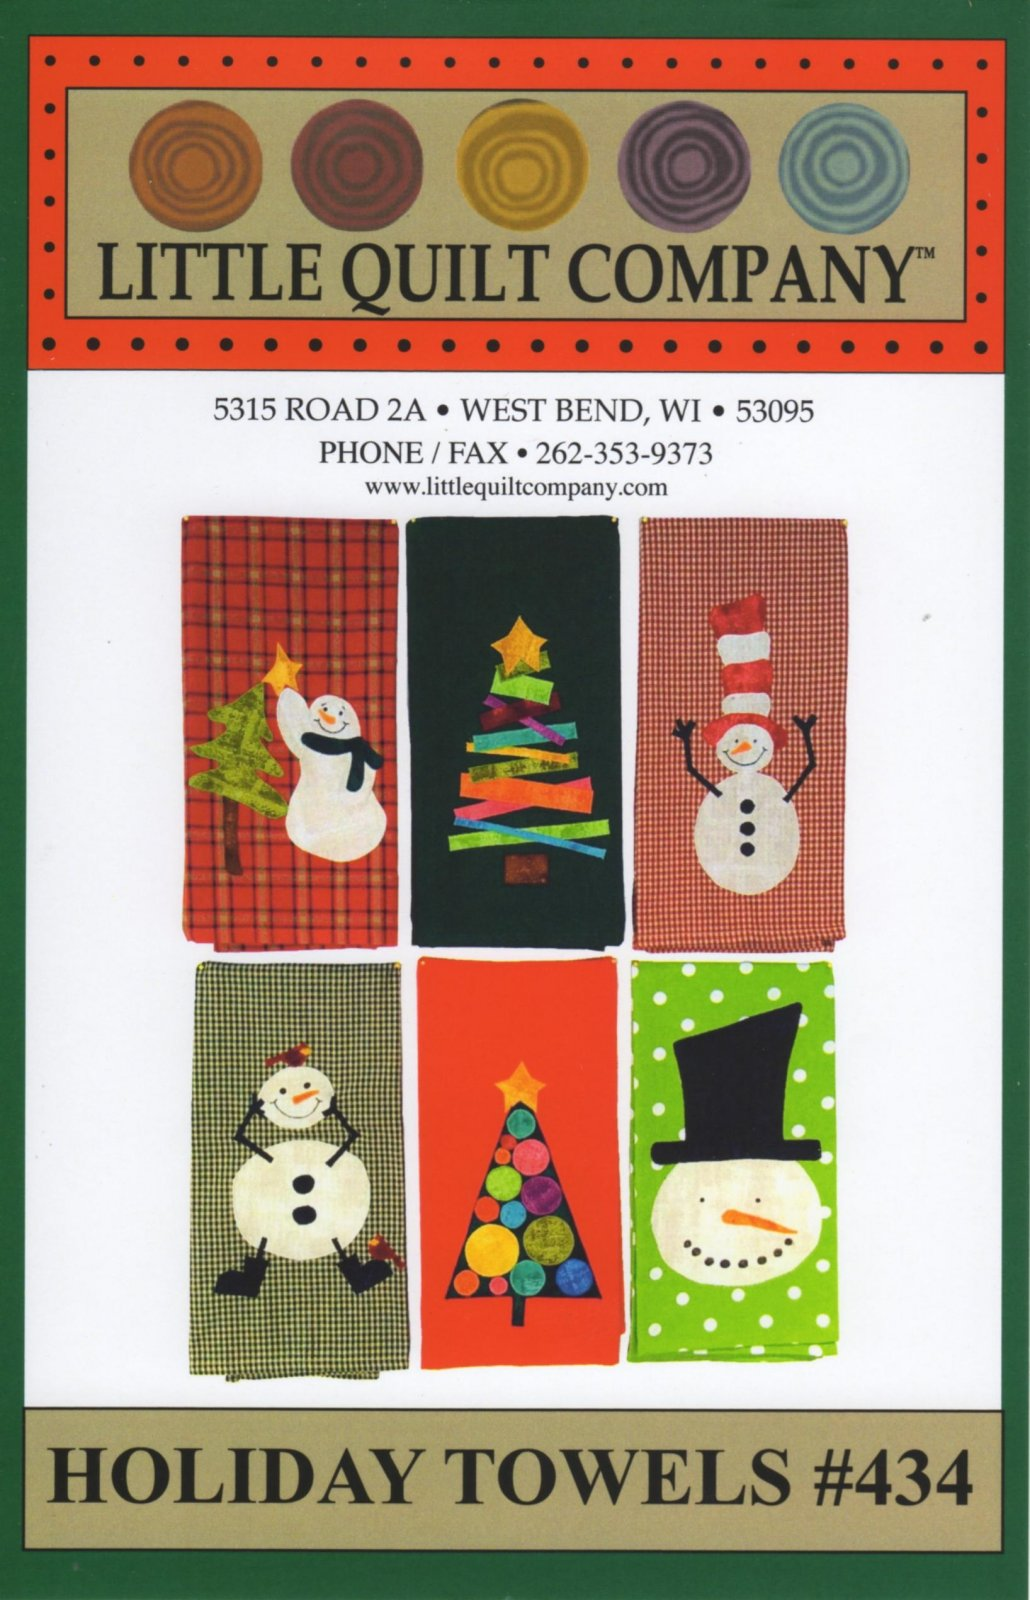 #434 Holiday Towels